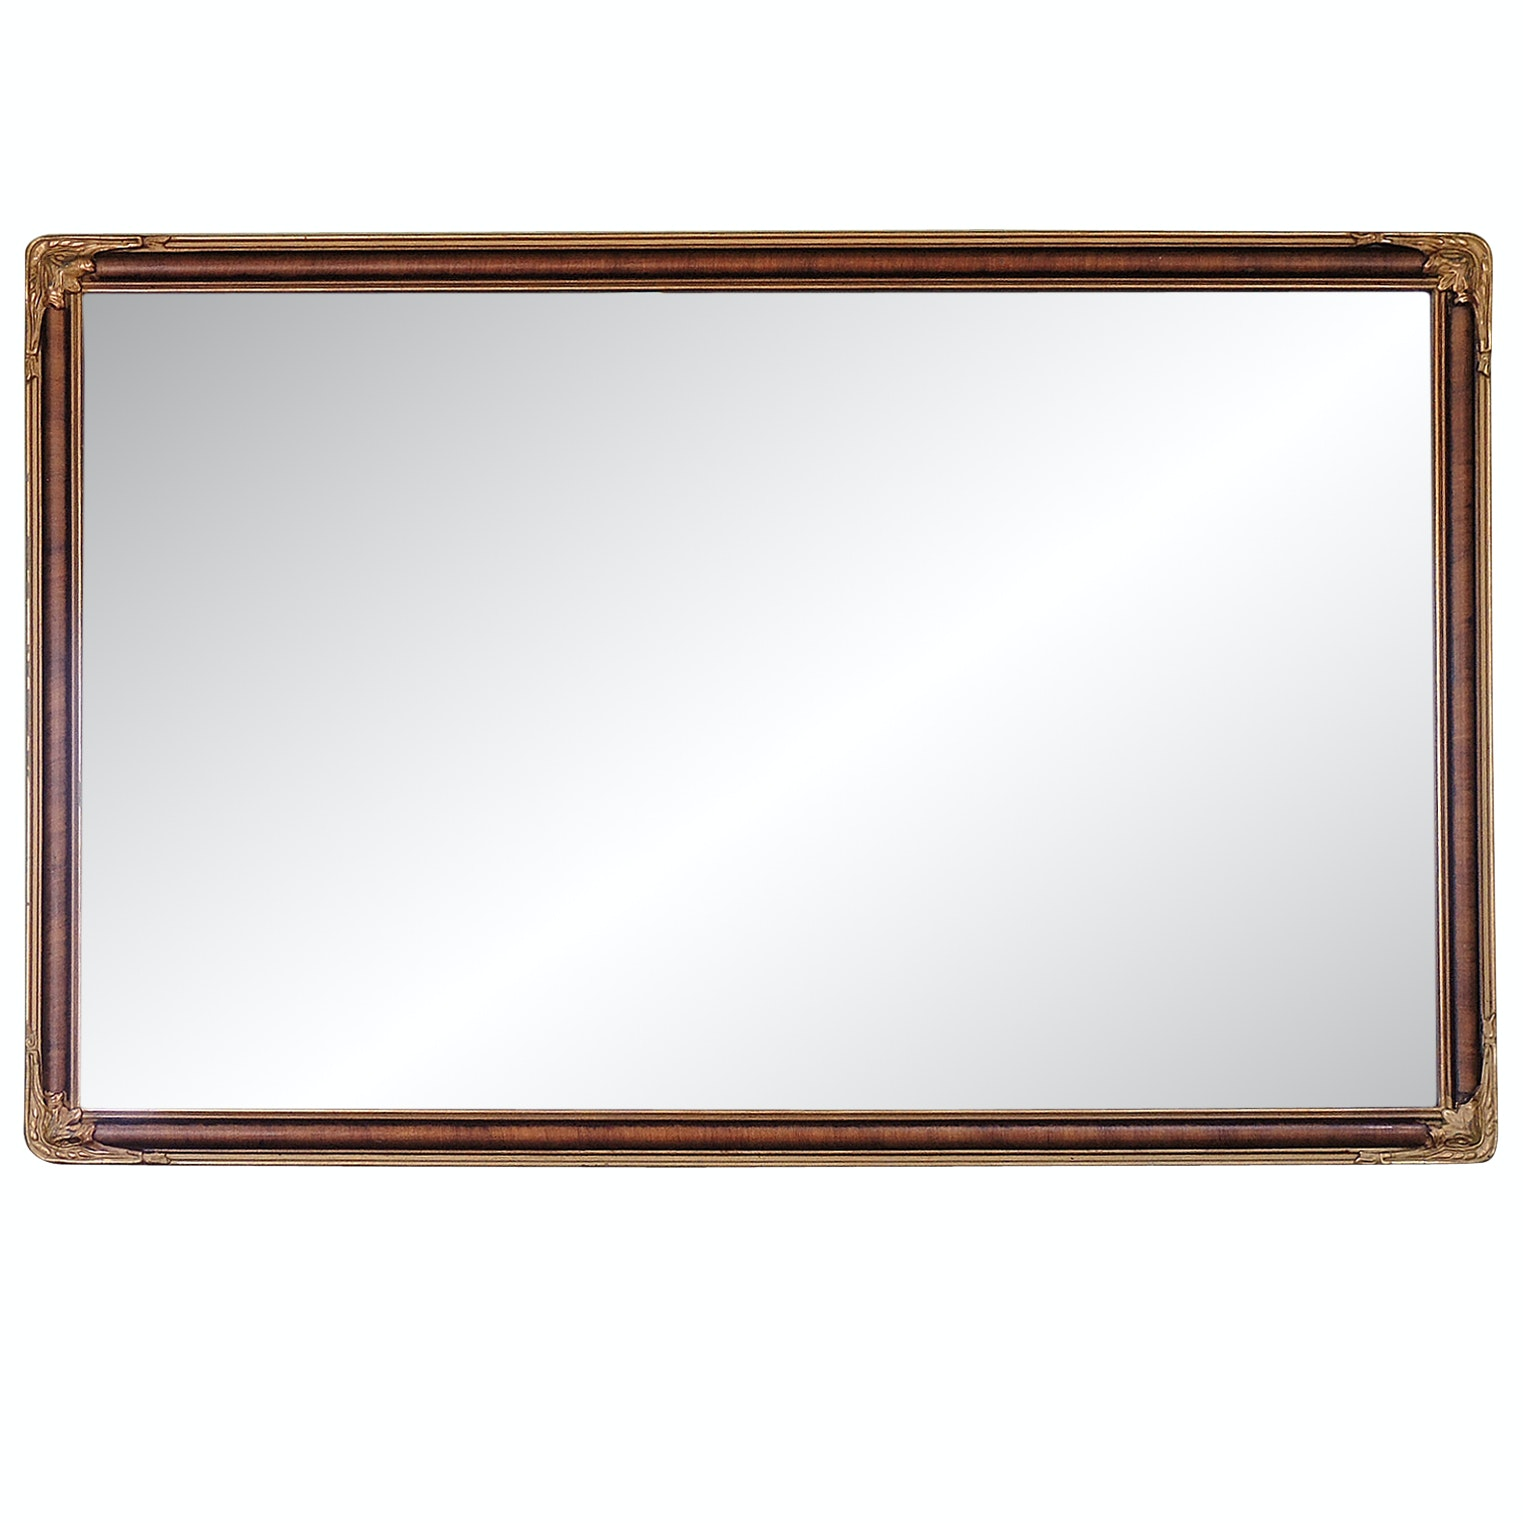 Faux Grain Painted Beveled Mirror